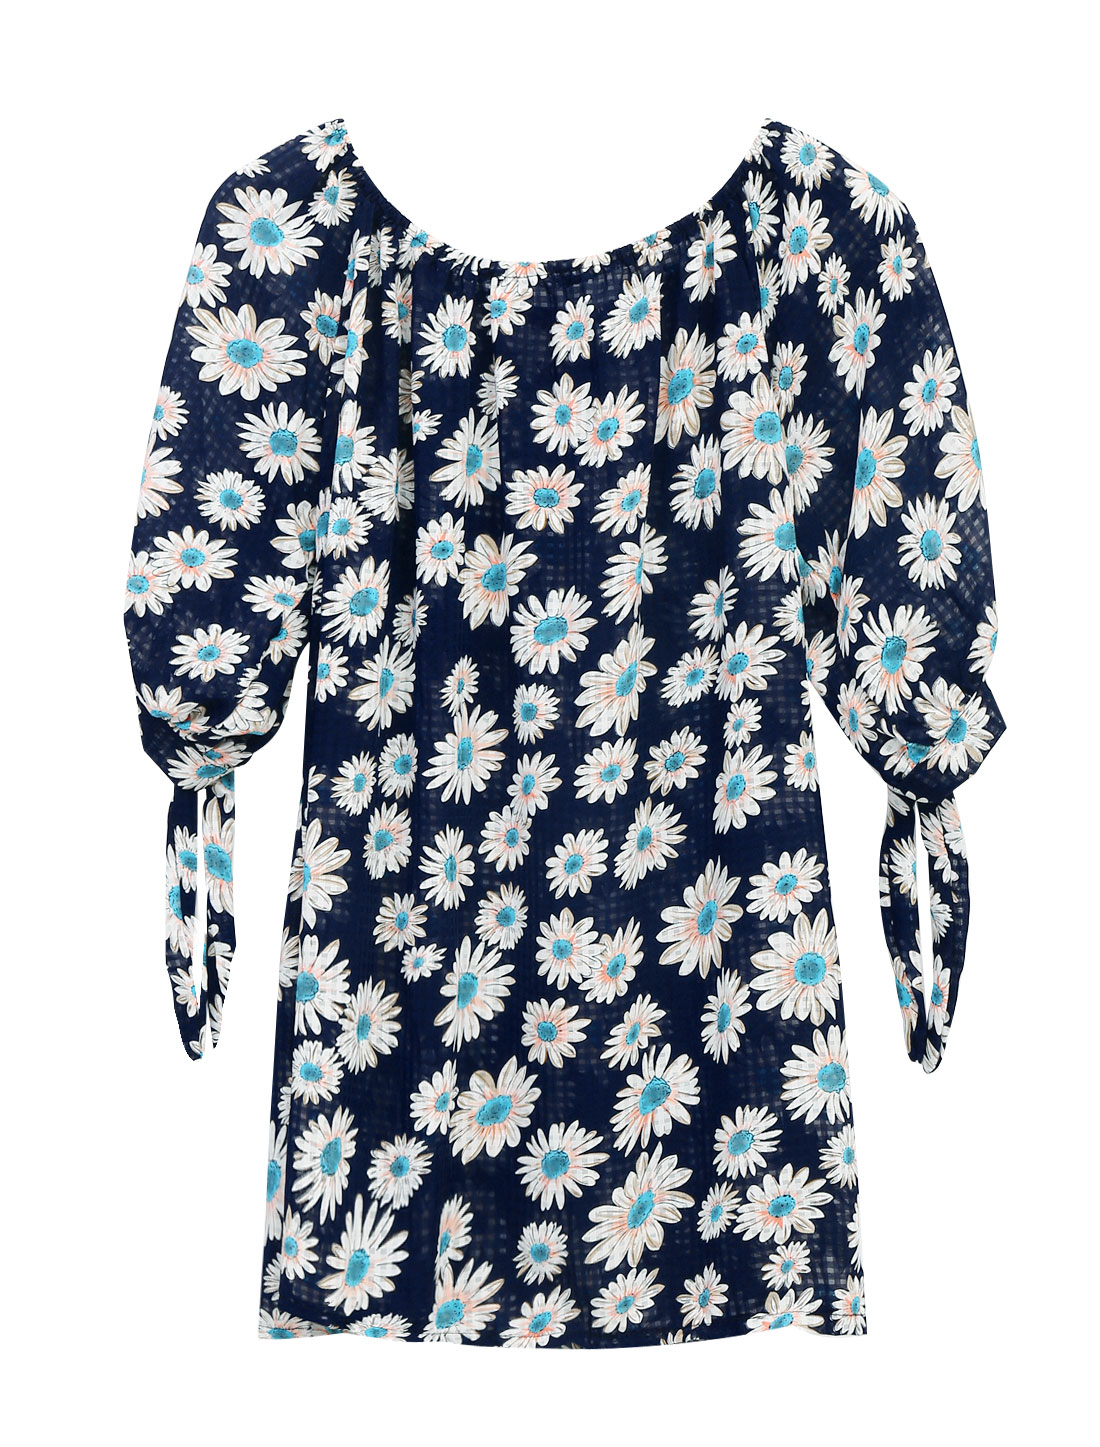 Ladies Summer Half Raglan Sleeve All Over Flower Pattern Chiffon Top Navy Blue S